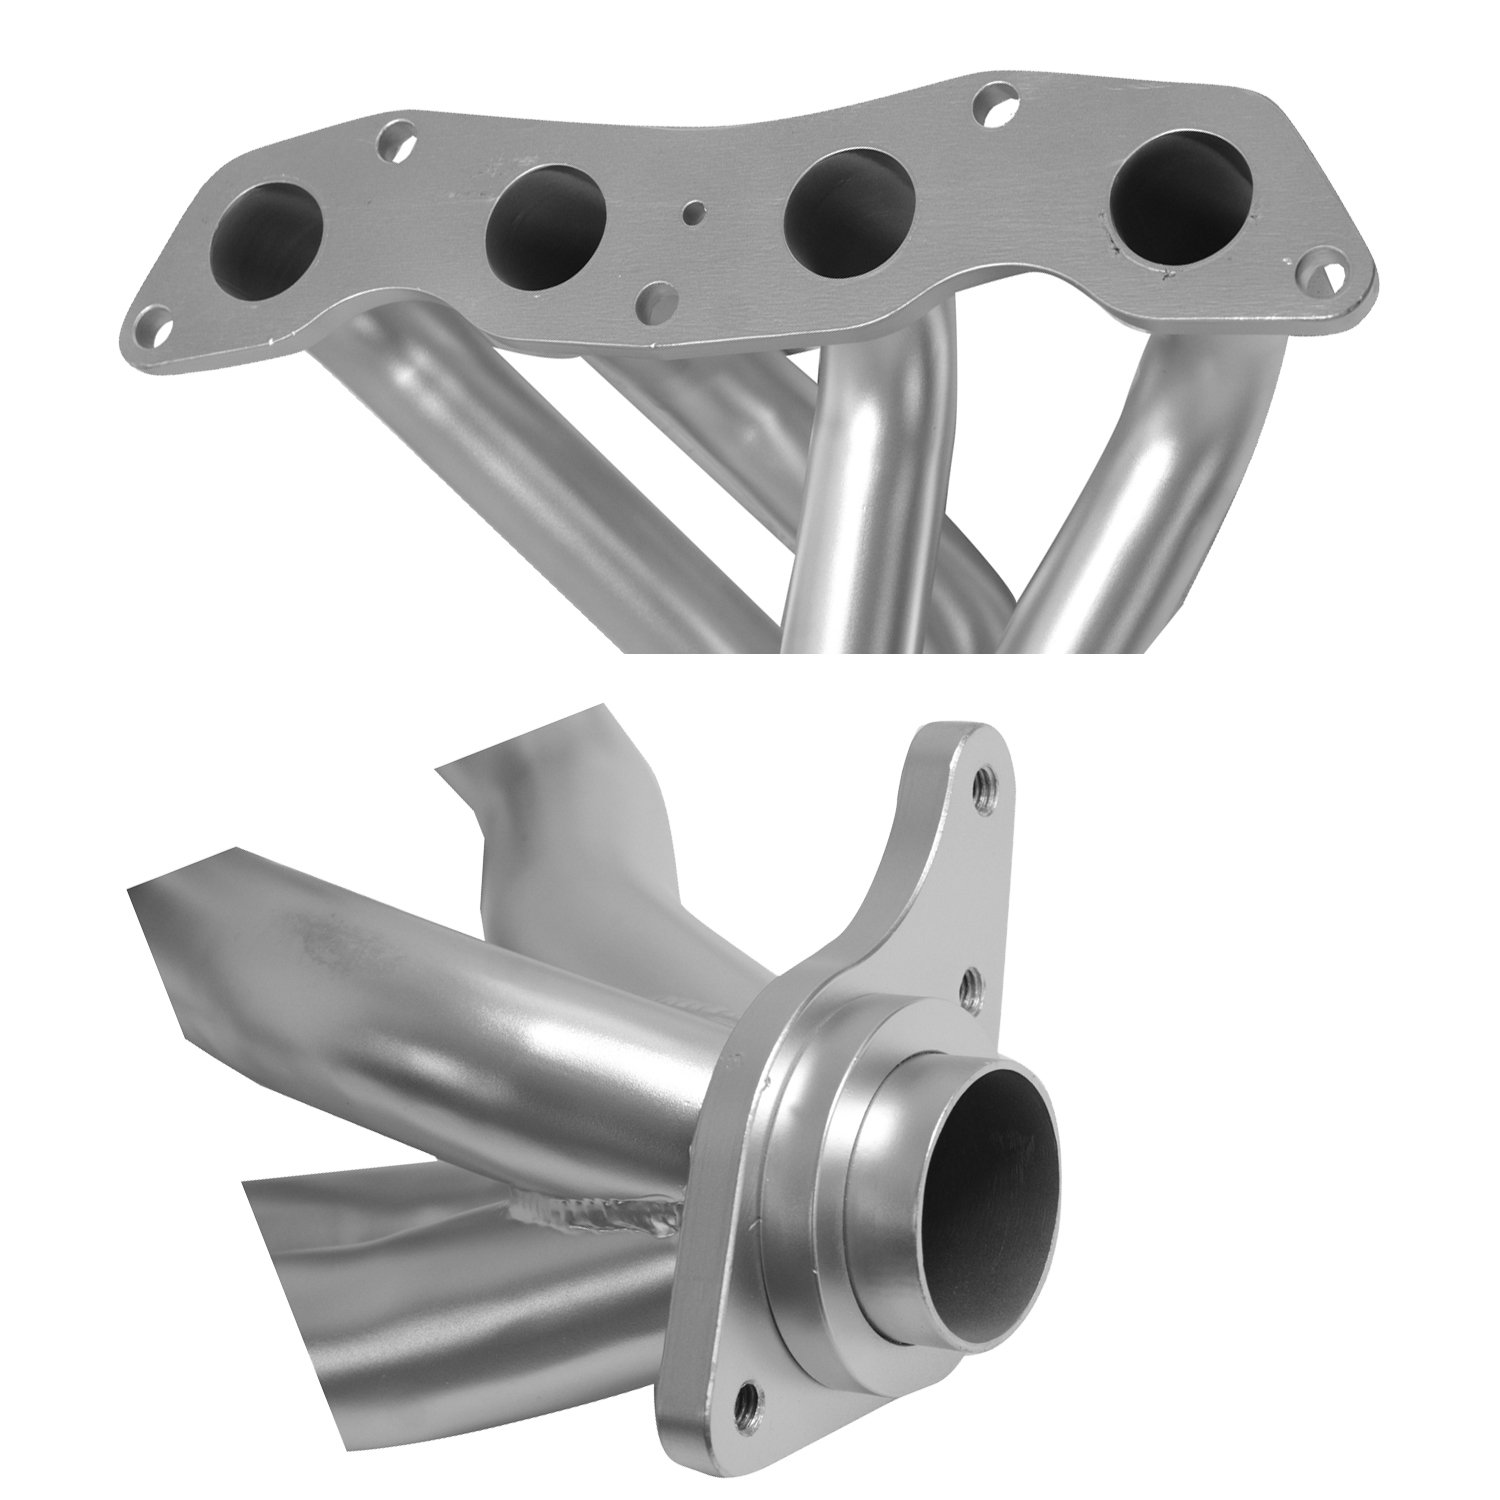 DC Sports HHC5023 Silver 4-1 Header with Ceramic Coating